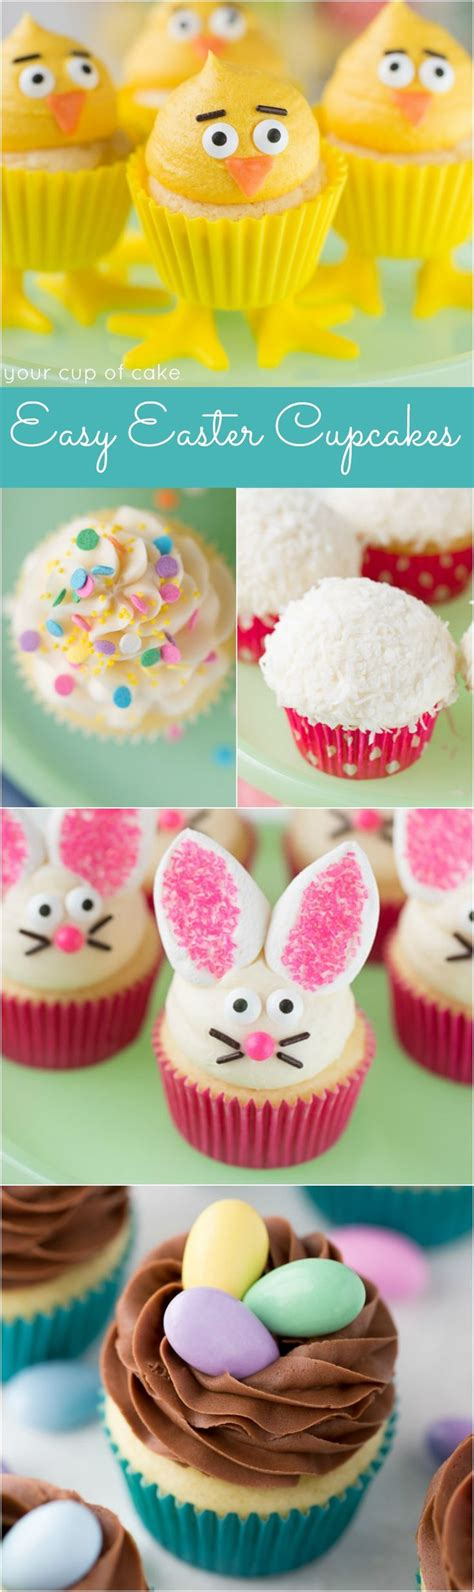 best 25 easy cupcake decorating ideas on pinterest